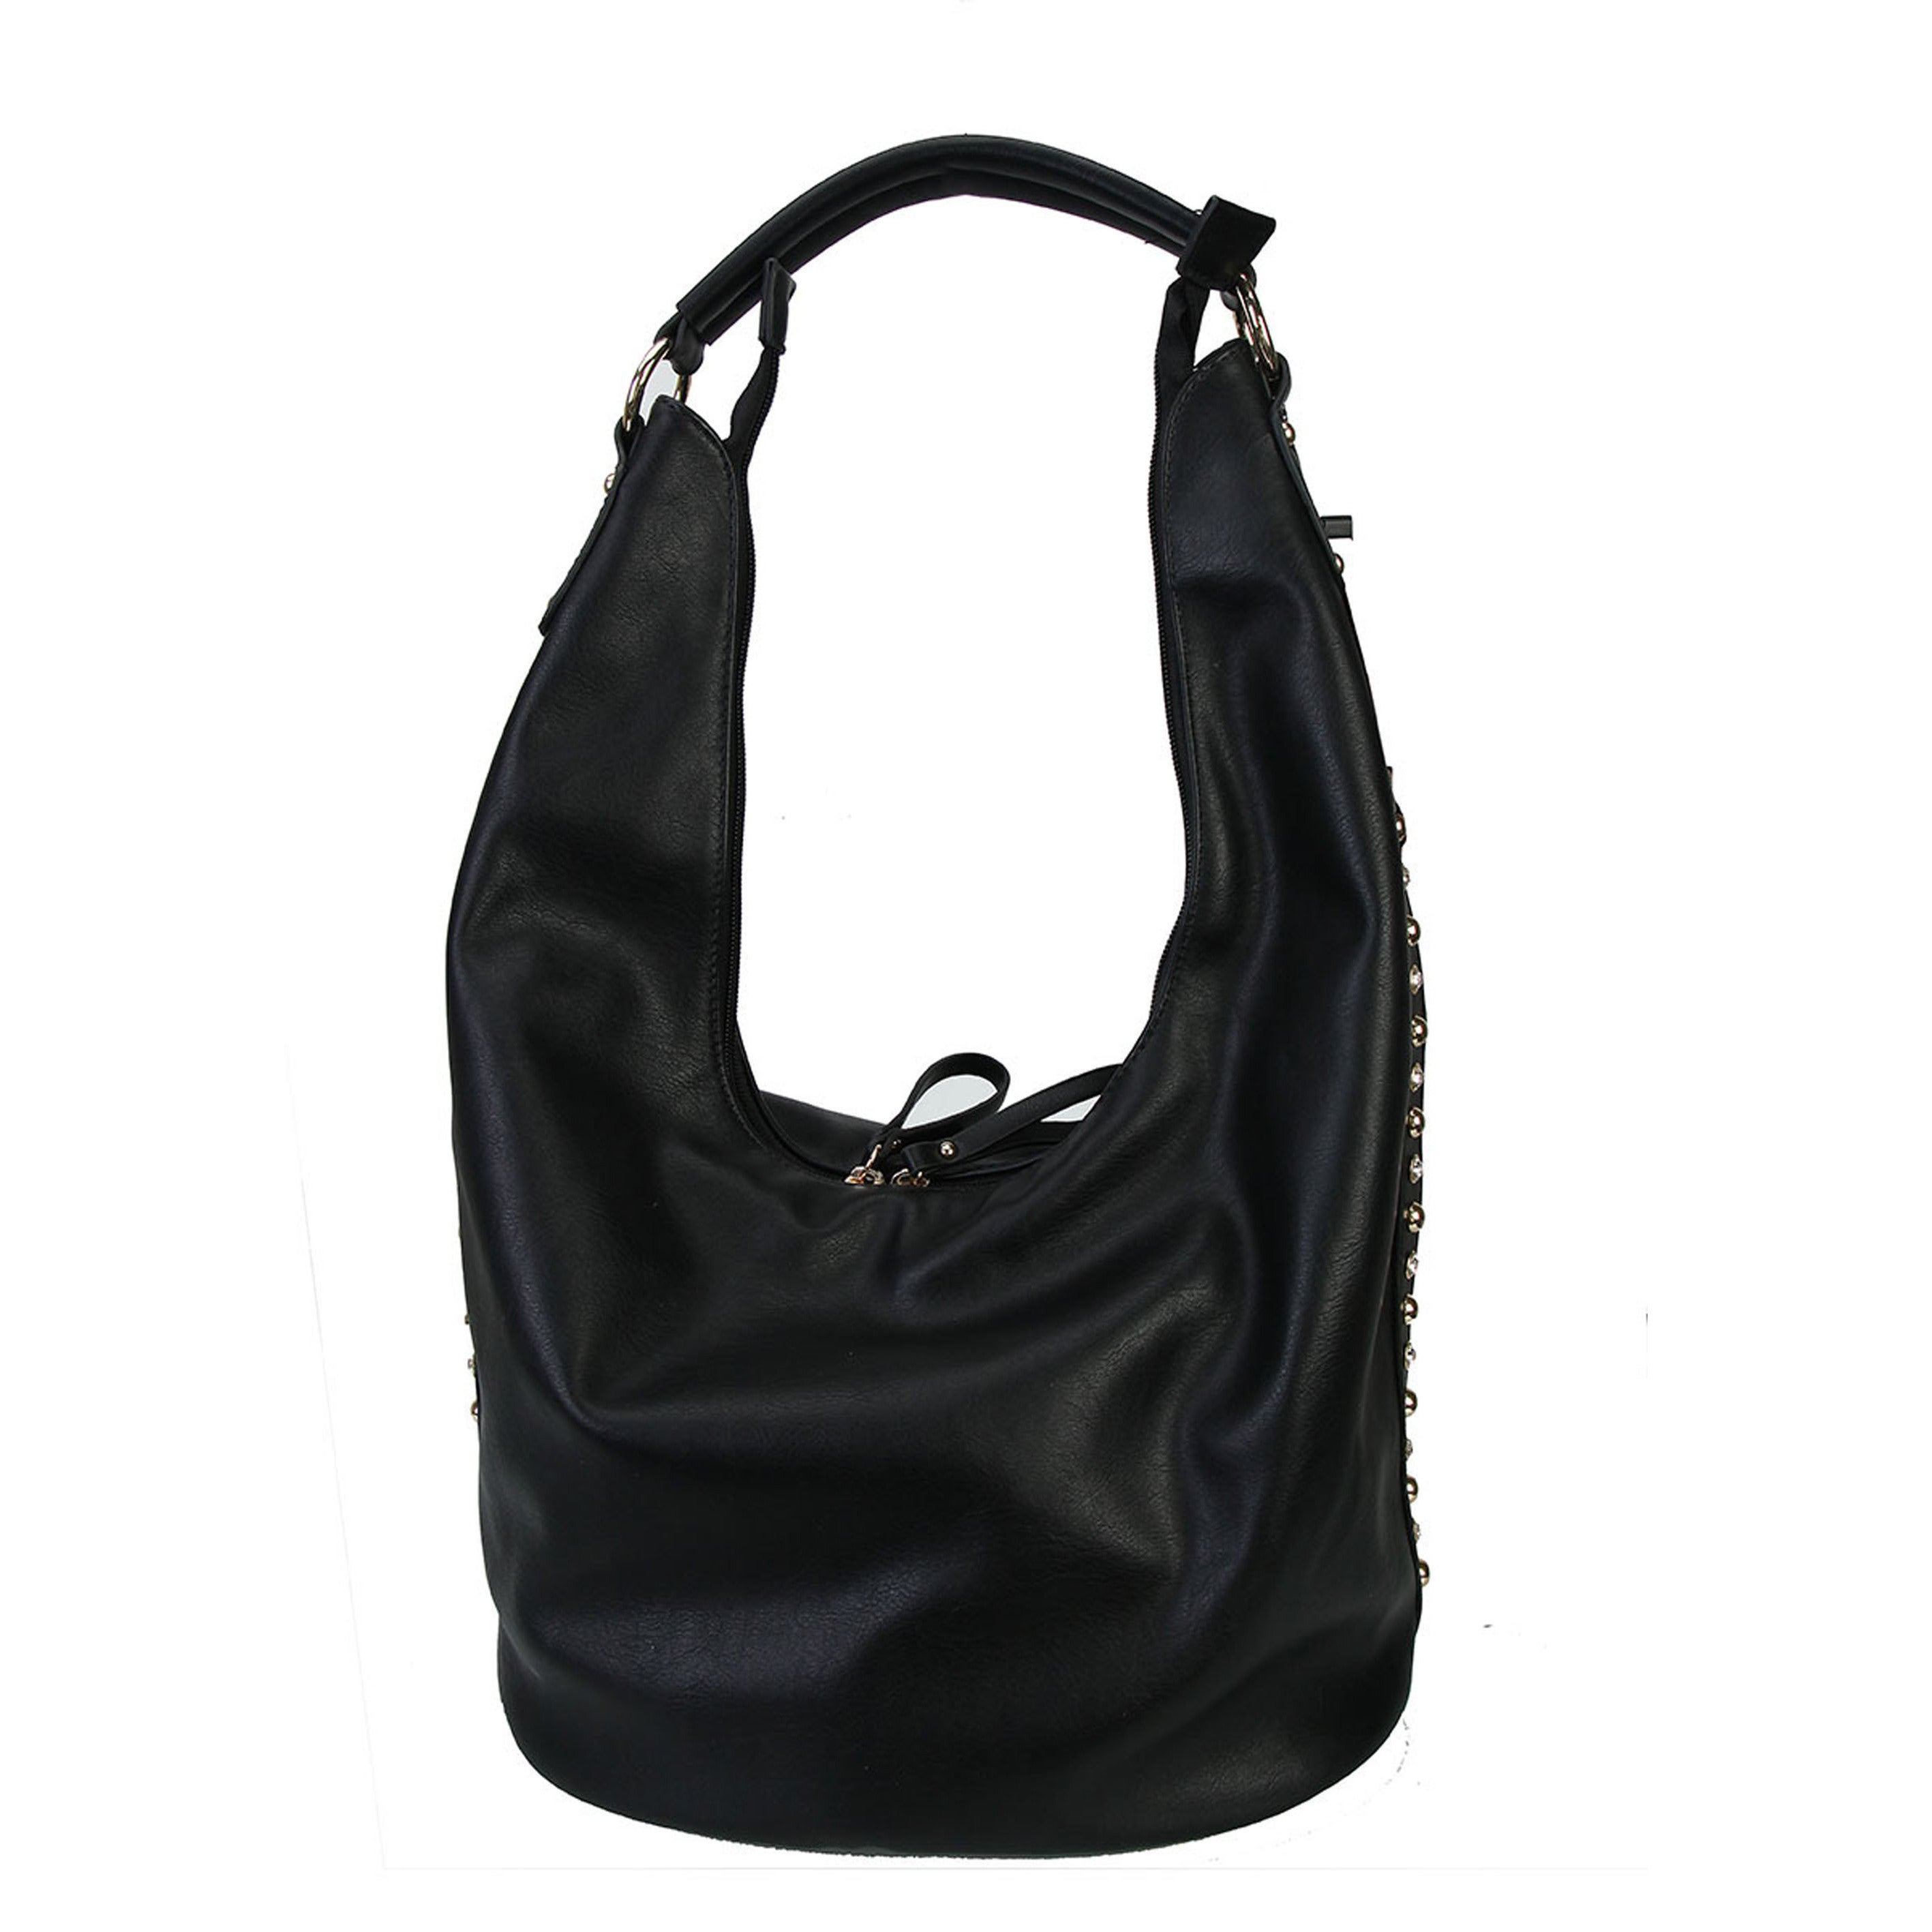 Shop Diophy Studs and Crystals Faux Leather Hobo Handbag - Free Shipping  Today - Overstock.com - 12930958 ee01460289